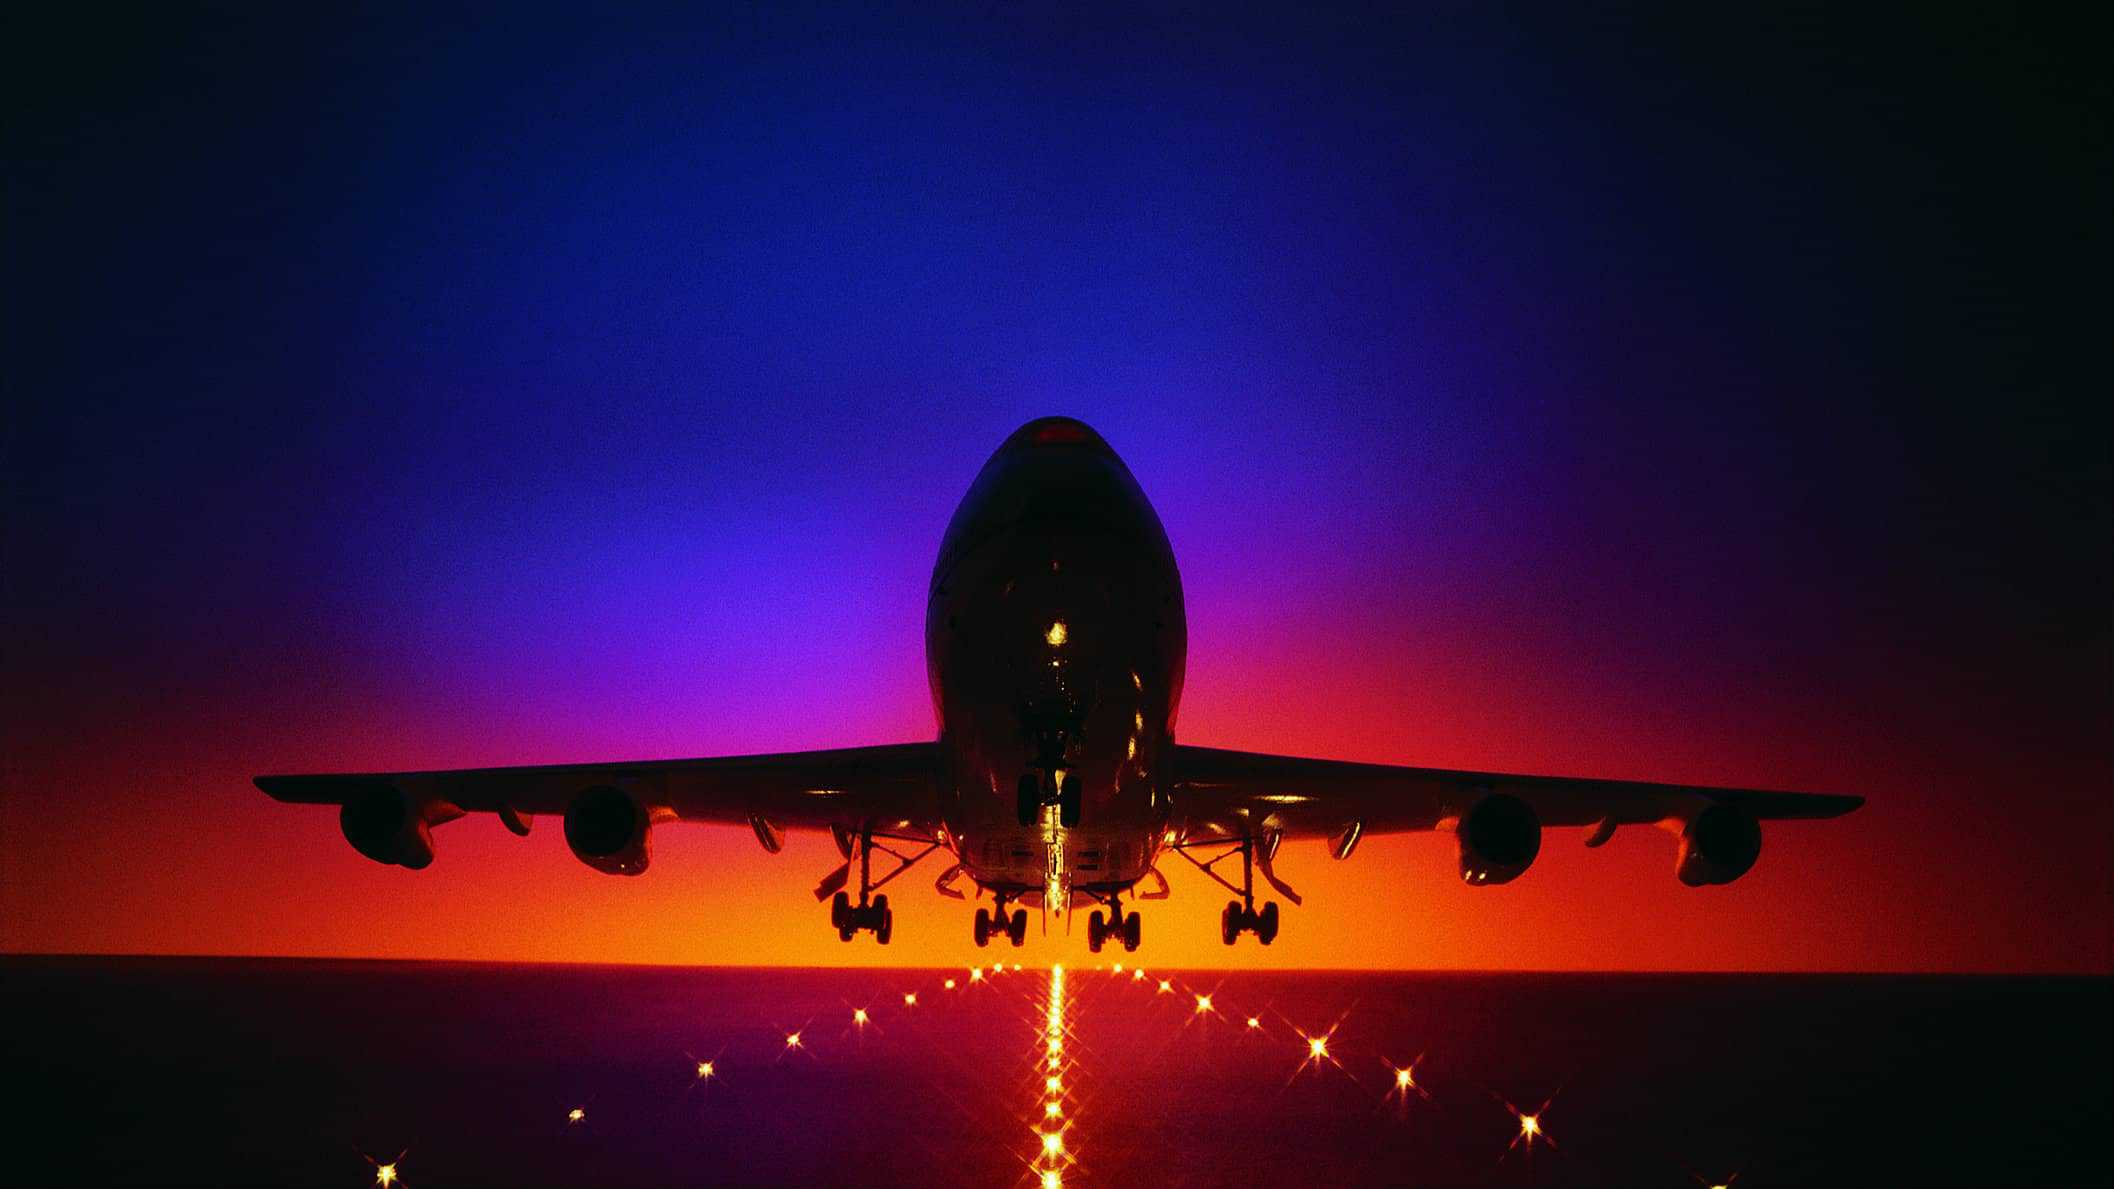 a plane takes off, climbing up into the sky, indicating positive lift in airline share price